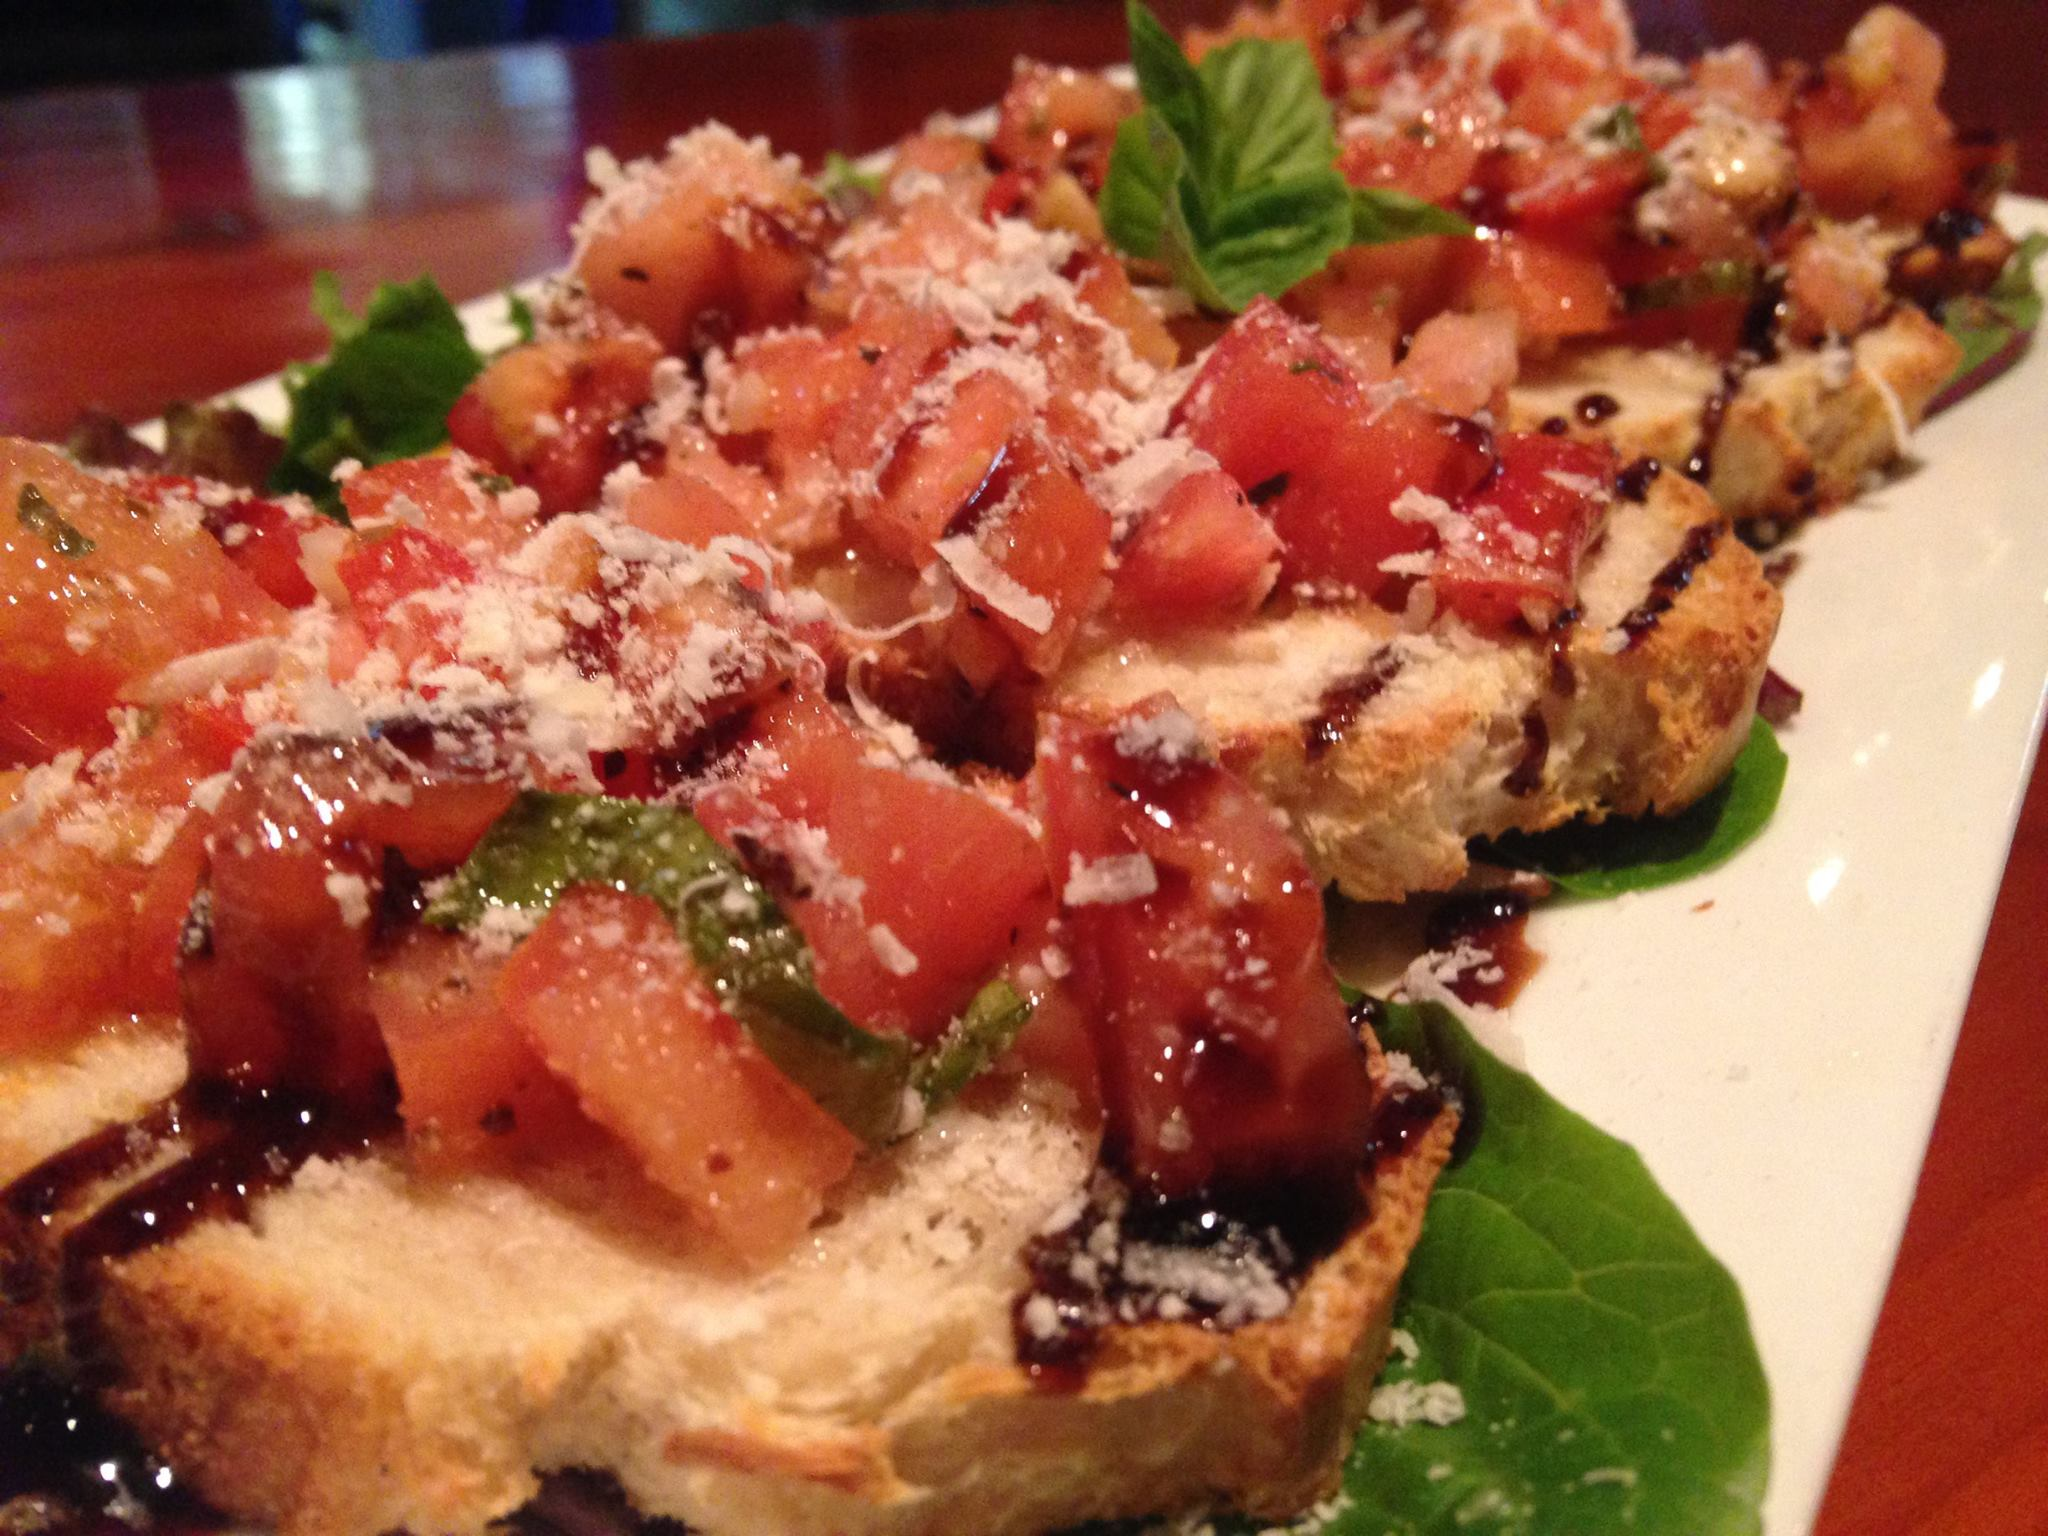 Bruschetta with tomatoes, shaved parmesan and balsamic glaze.